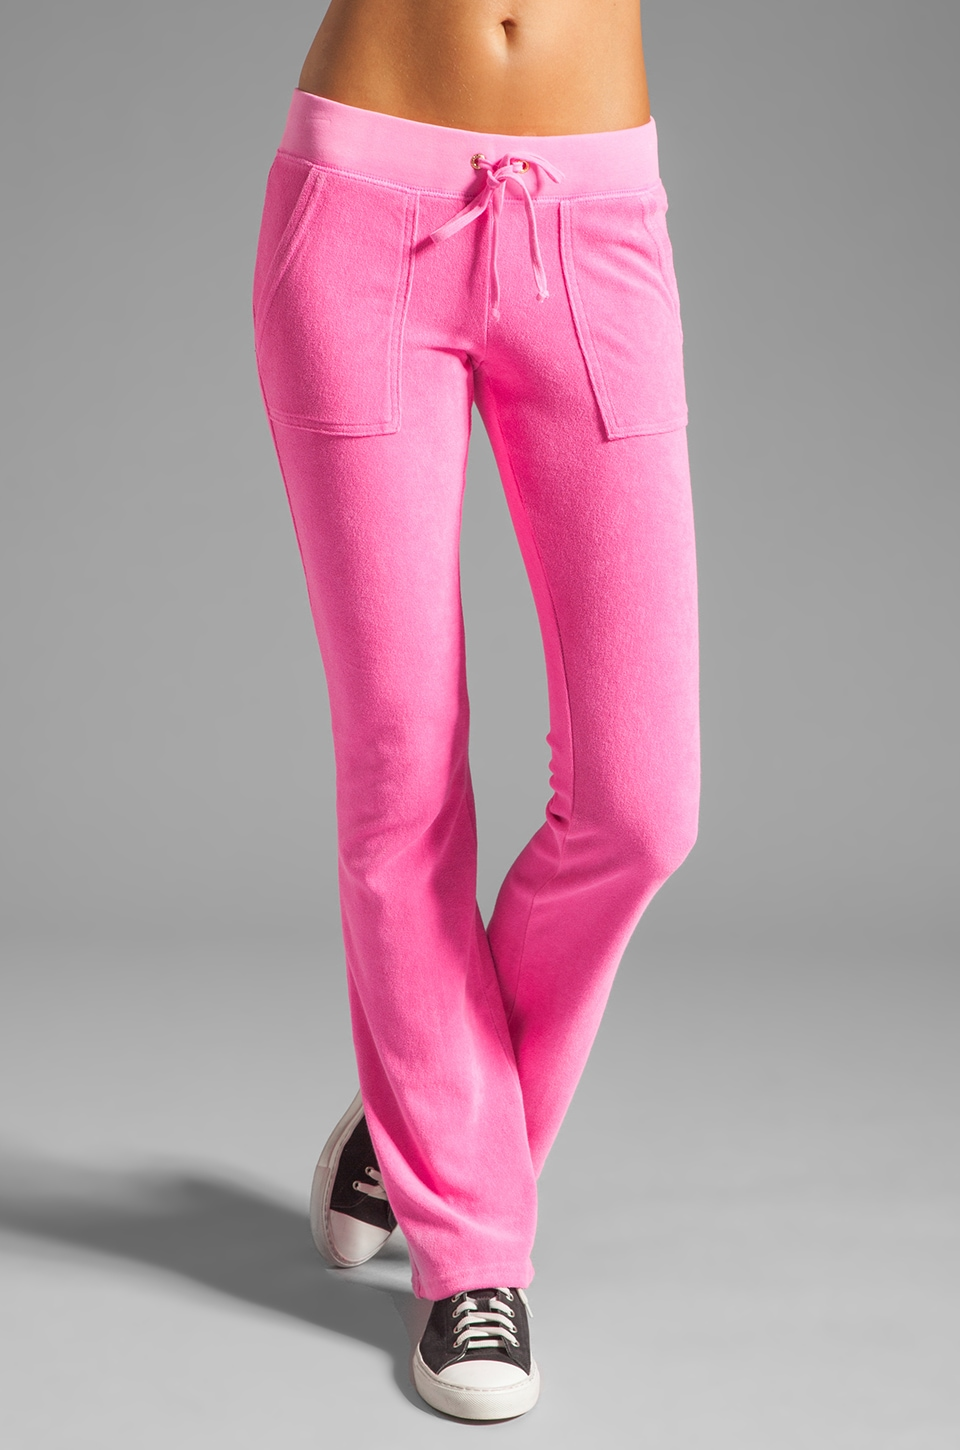 Juicy Couture Terry Snap Pocket Pant in Mademoiselle